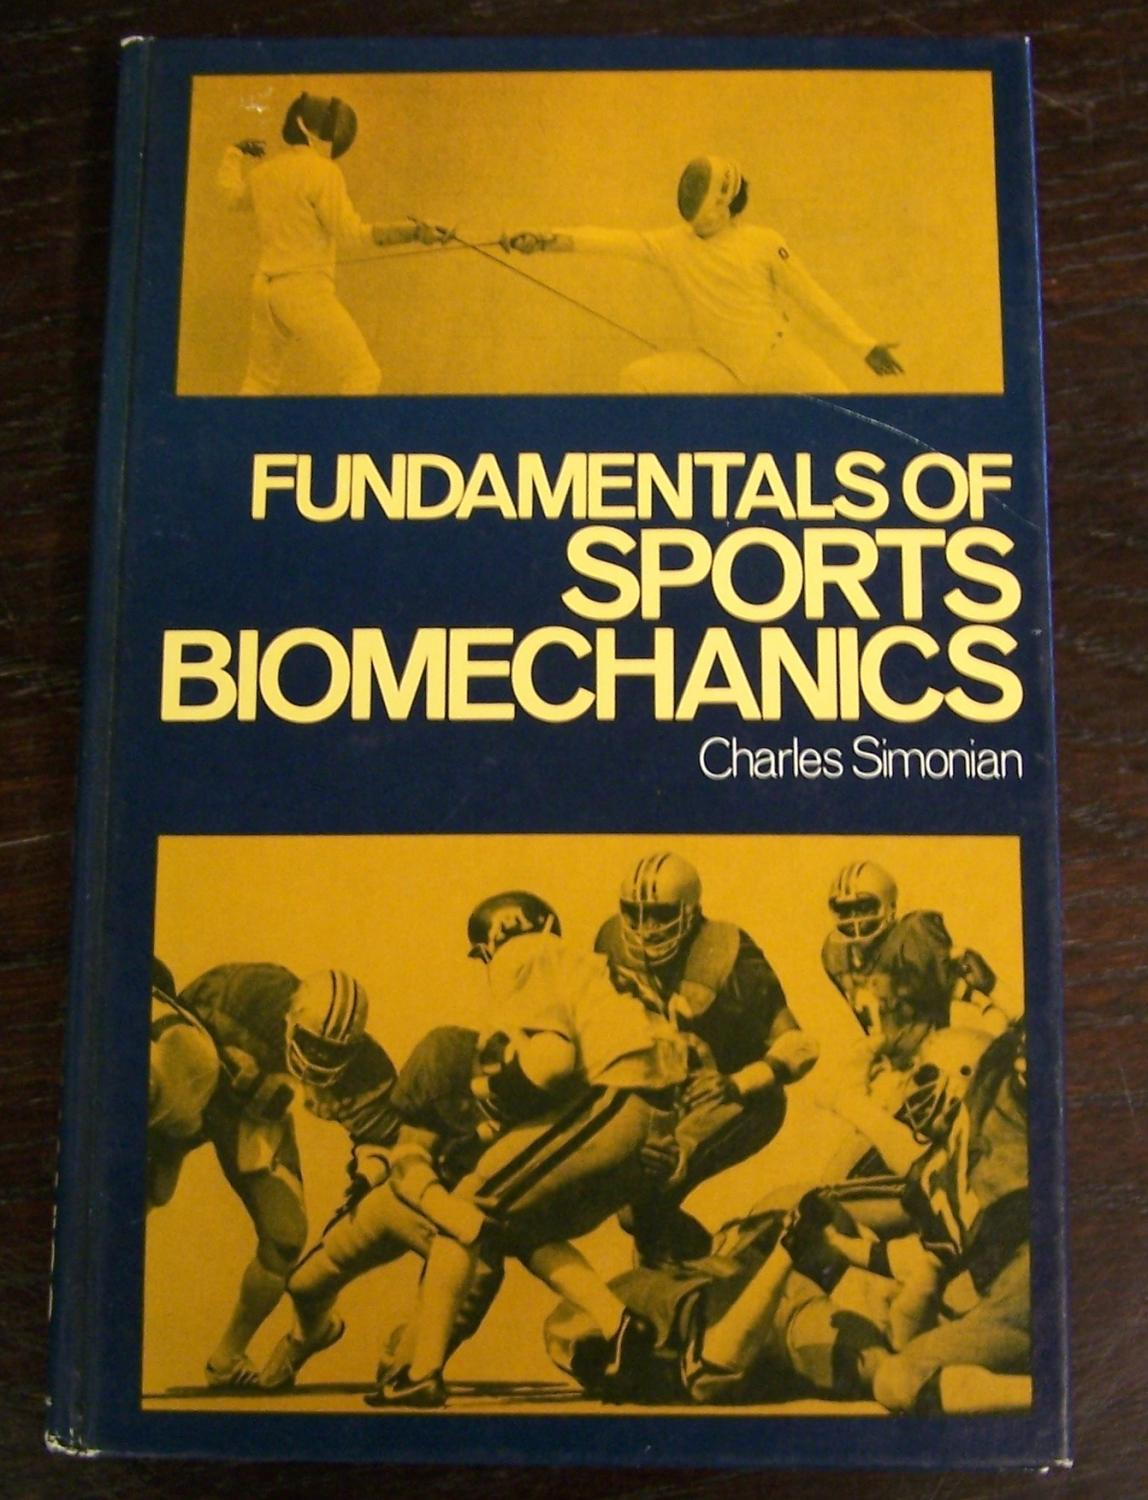 pe notes on bimechanics Notes assignments project email exsc 662 - mechanical analysis of activity brigham young university chapter 1 - objectives byu biomechanics.